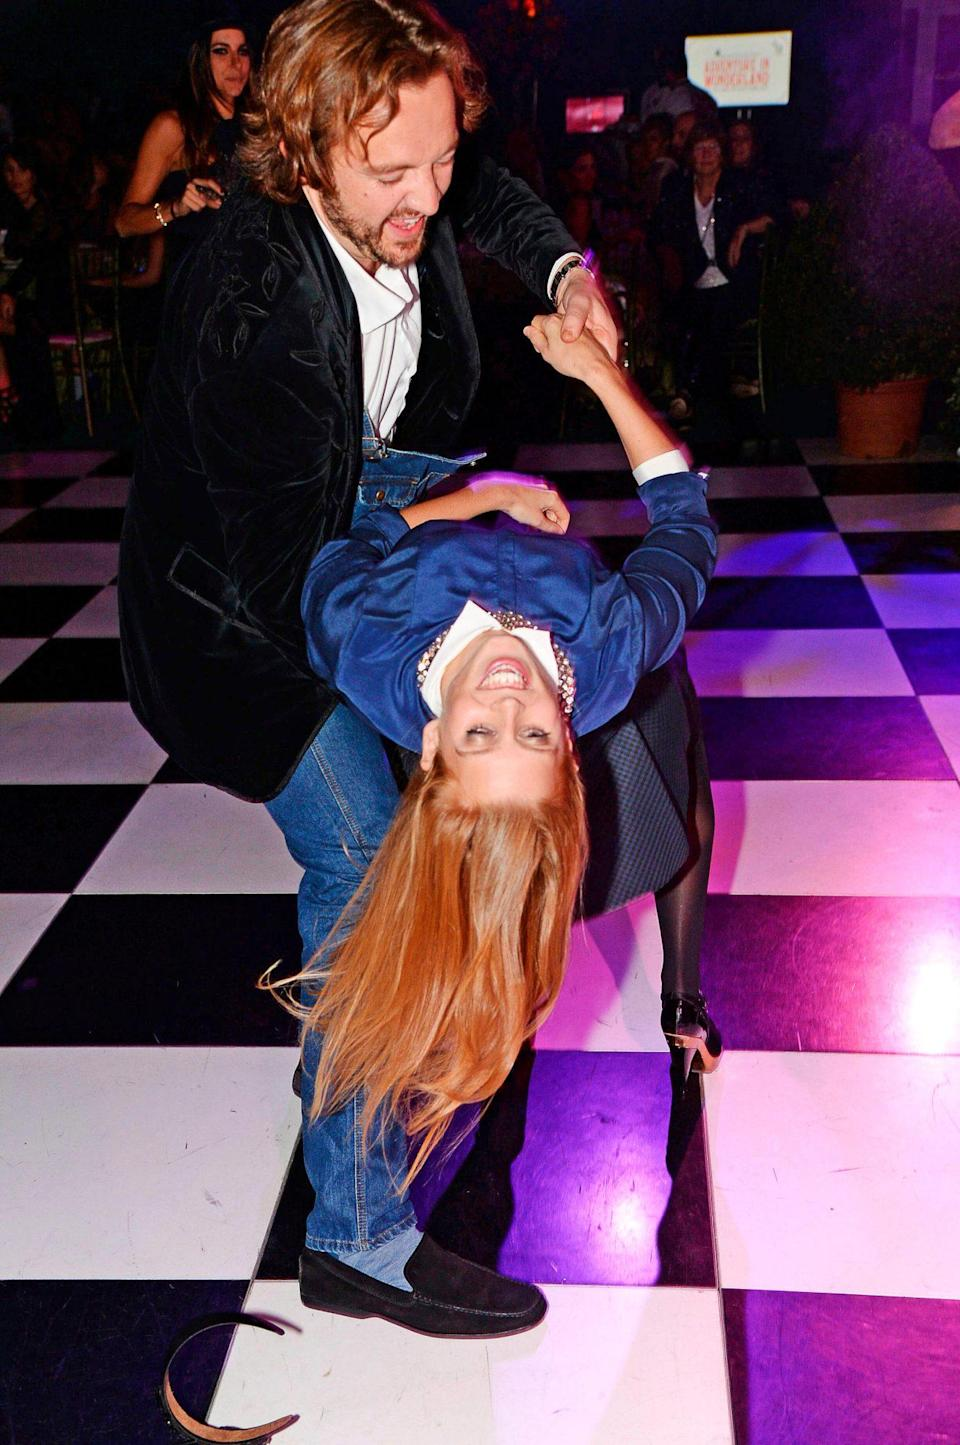 <p>Beatrice danced with a friend in London at the 2013 Adventure in Wonderland Ball, which raised funds for the Great Ormond Street Hospital Children's Charity.</p>